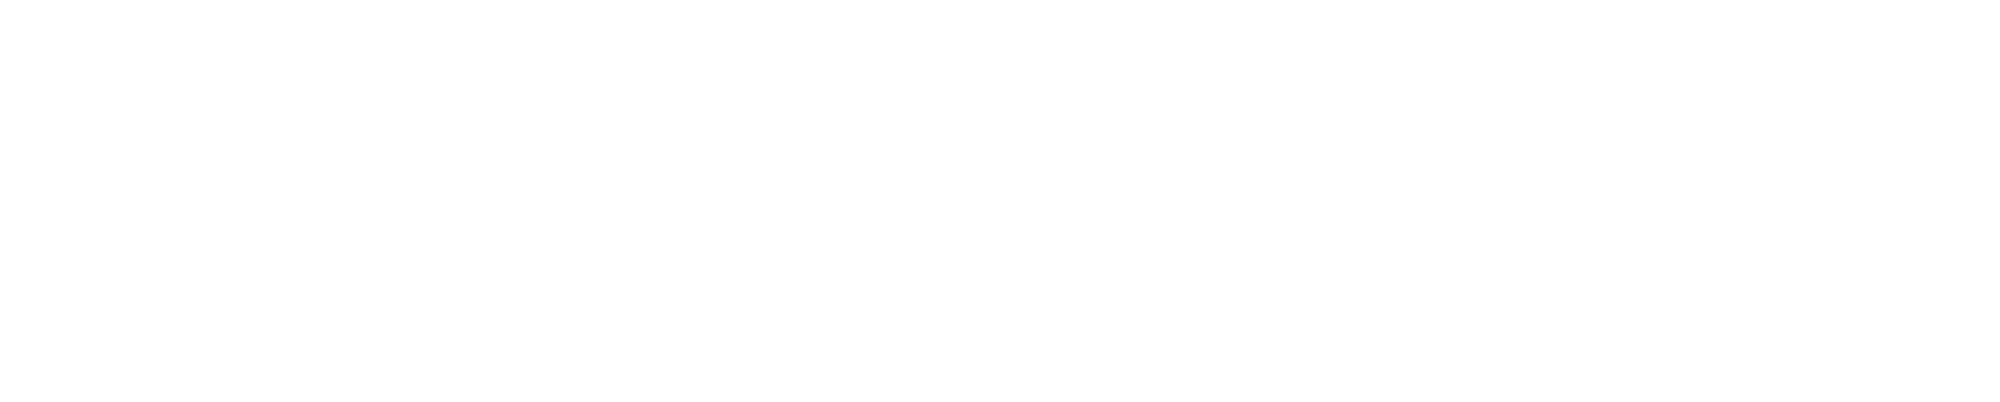 university of chicago png